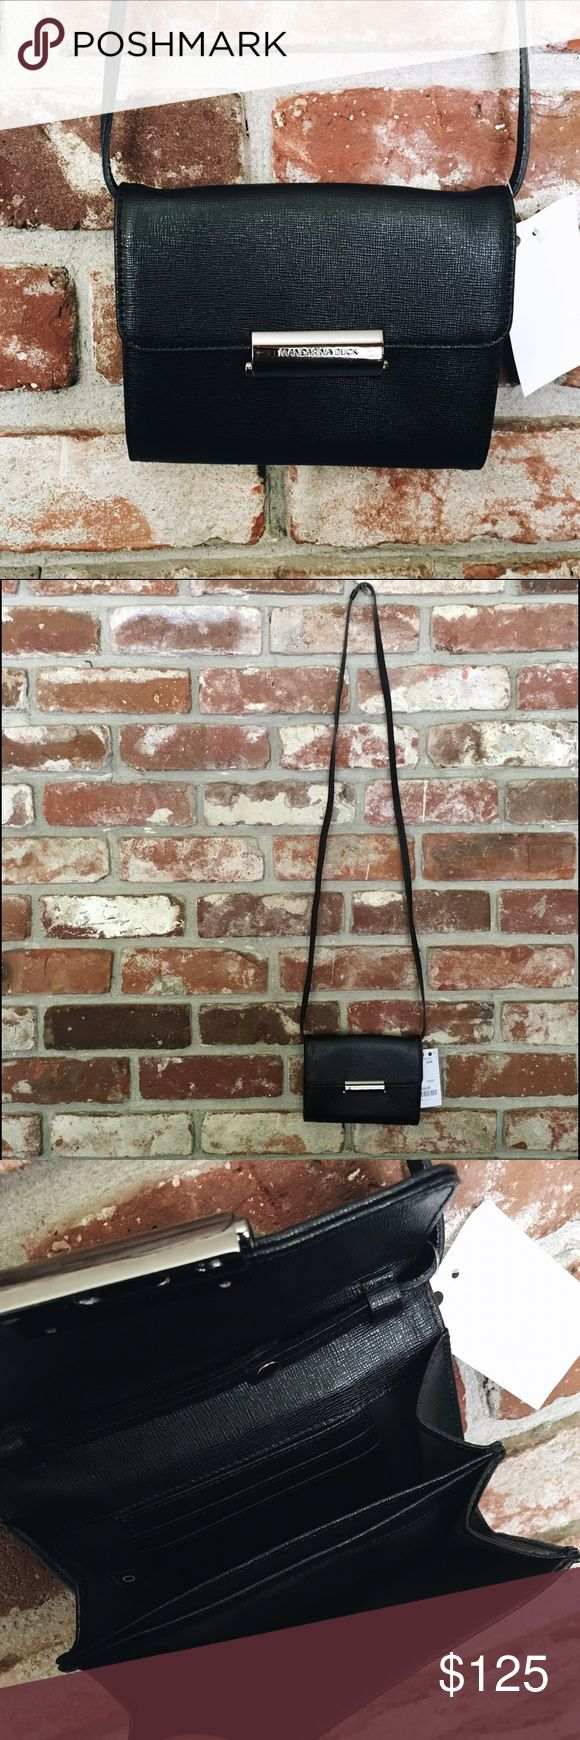 Black Mandarina Duck Cross Body Bag Gorgeous black with dark black silver enclosure. Keeps your items safe with a latch than can only open by pressing the side button. 3 compartments inside with card holders. Brand new with tag, purchased in London, UK! Mandarina Duck Bags Crossbody Bags